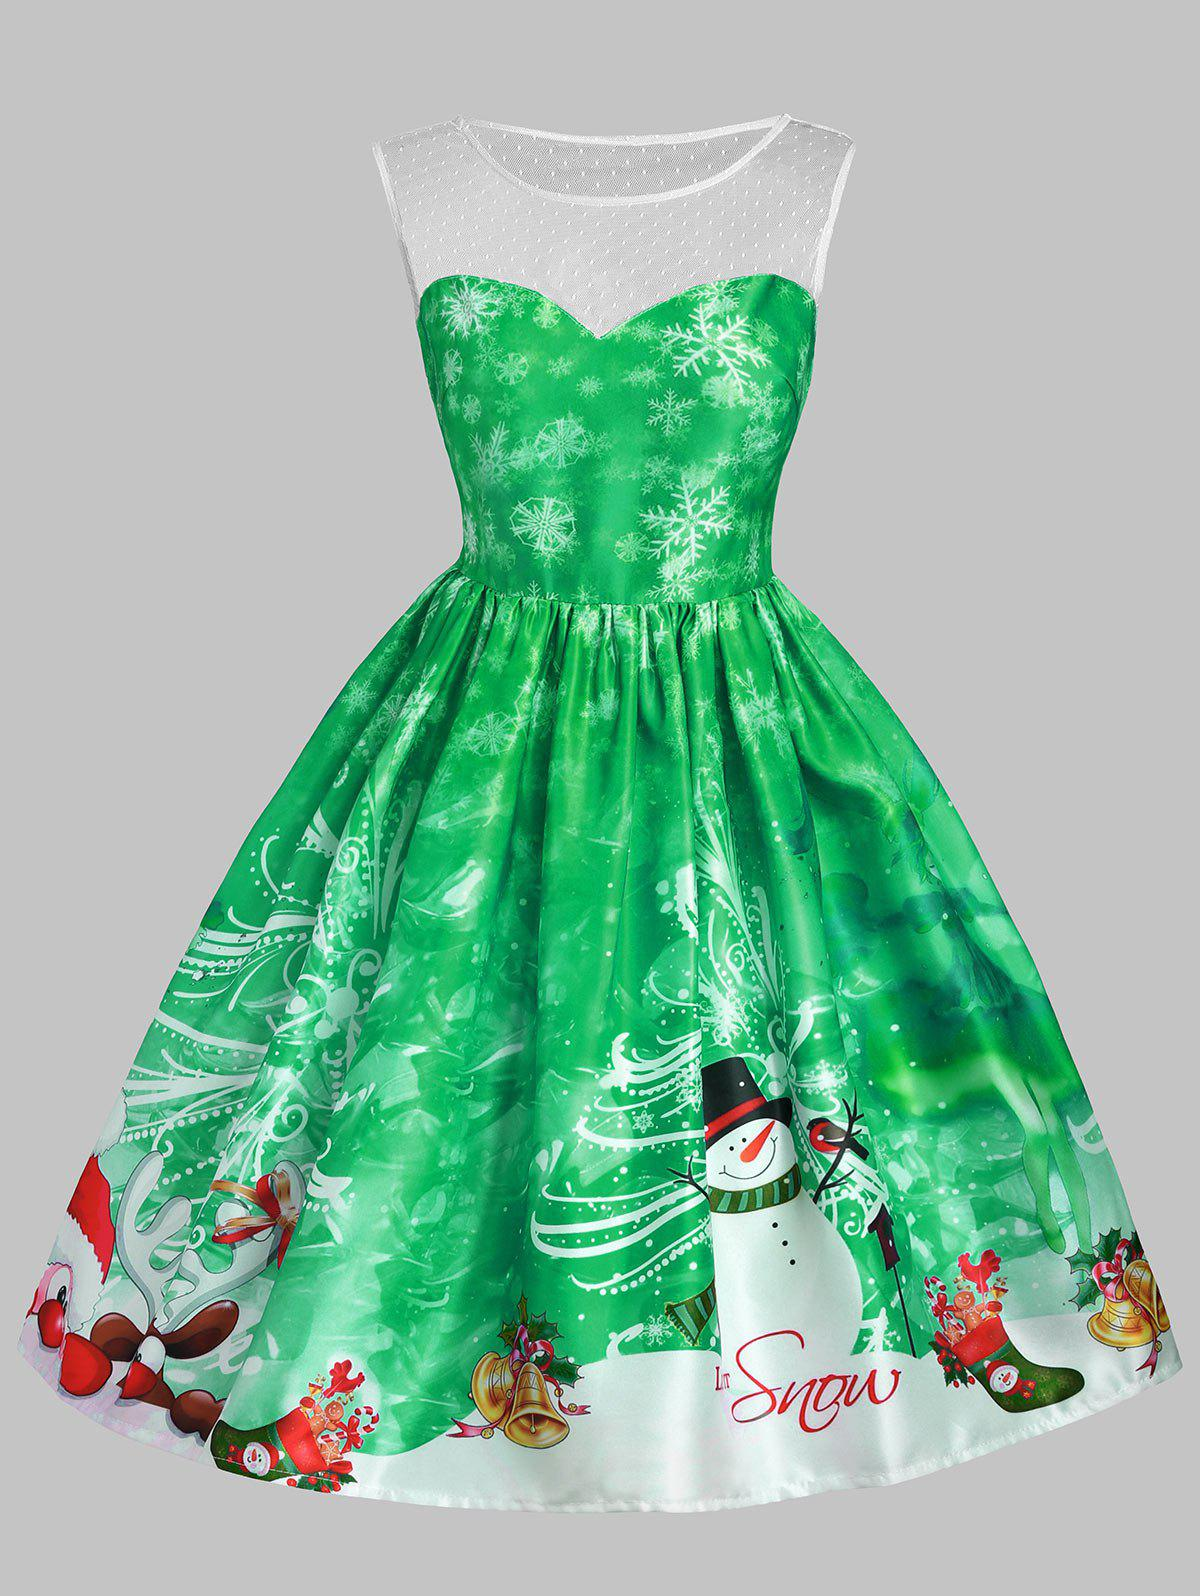 Christmas Snowman Snowflake Mesh Insert DressWOMEN<br><br>Size: XL; Color: GREEN; Style: Vintage; Material: Cotton,Polyester; Silhouette: A-Line; Dresses Length: Knee-Length; Neckline: Round Collar; Sleeve Length: Sleeveless; Embellishment: Mesh; Pattern Type: Letter,Print; With Belt: No; Season: Fall,Spring,Summer; Weight: 0.3500kg; Package Contents: 1 x Dress;